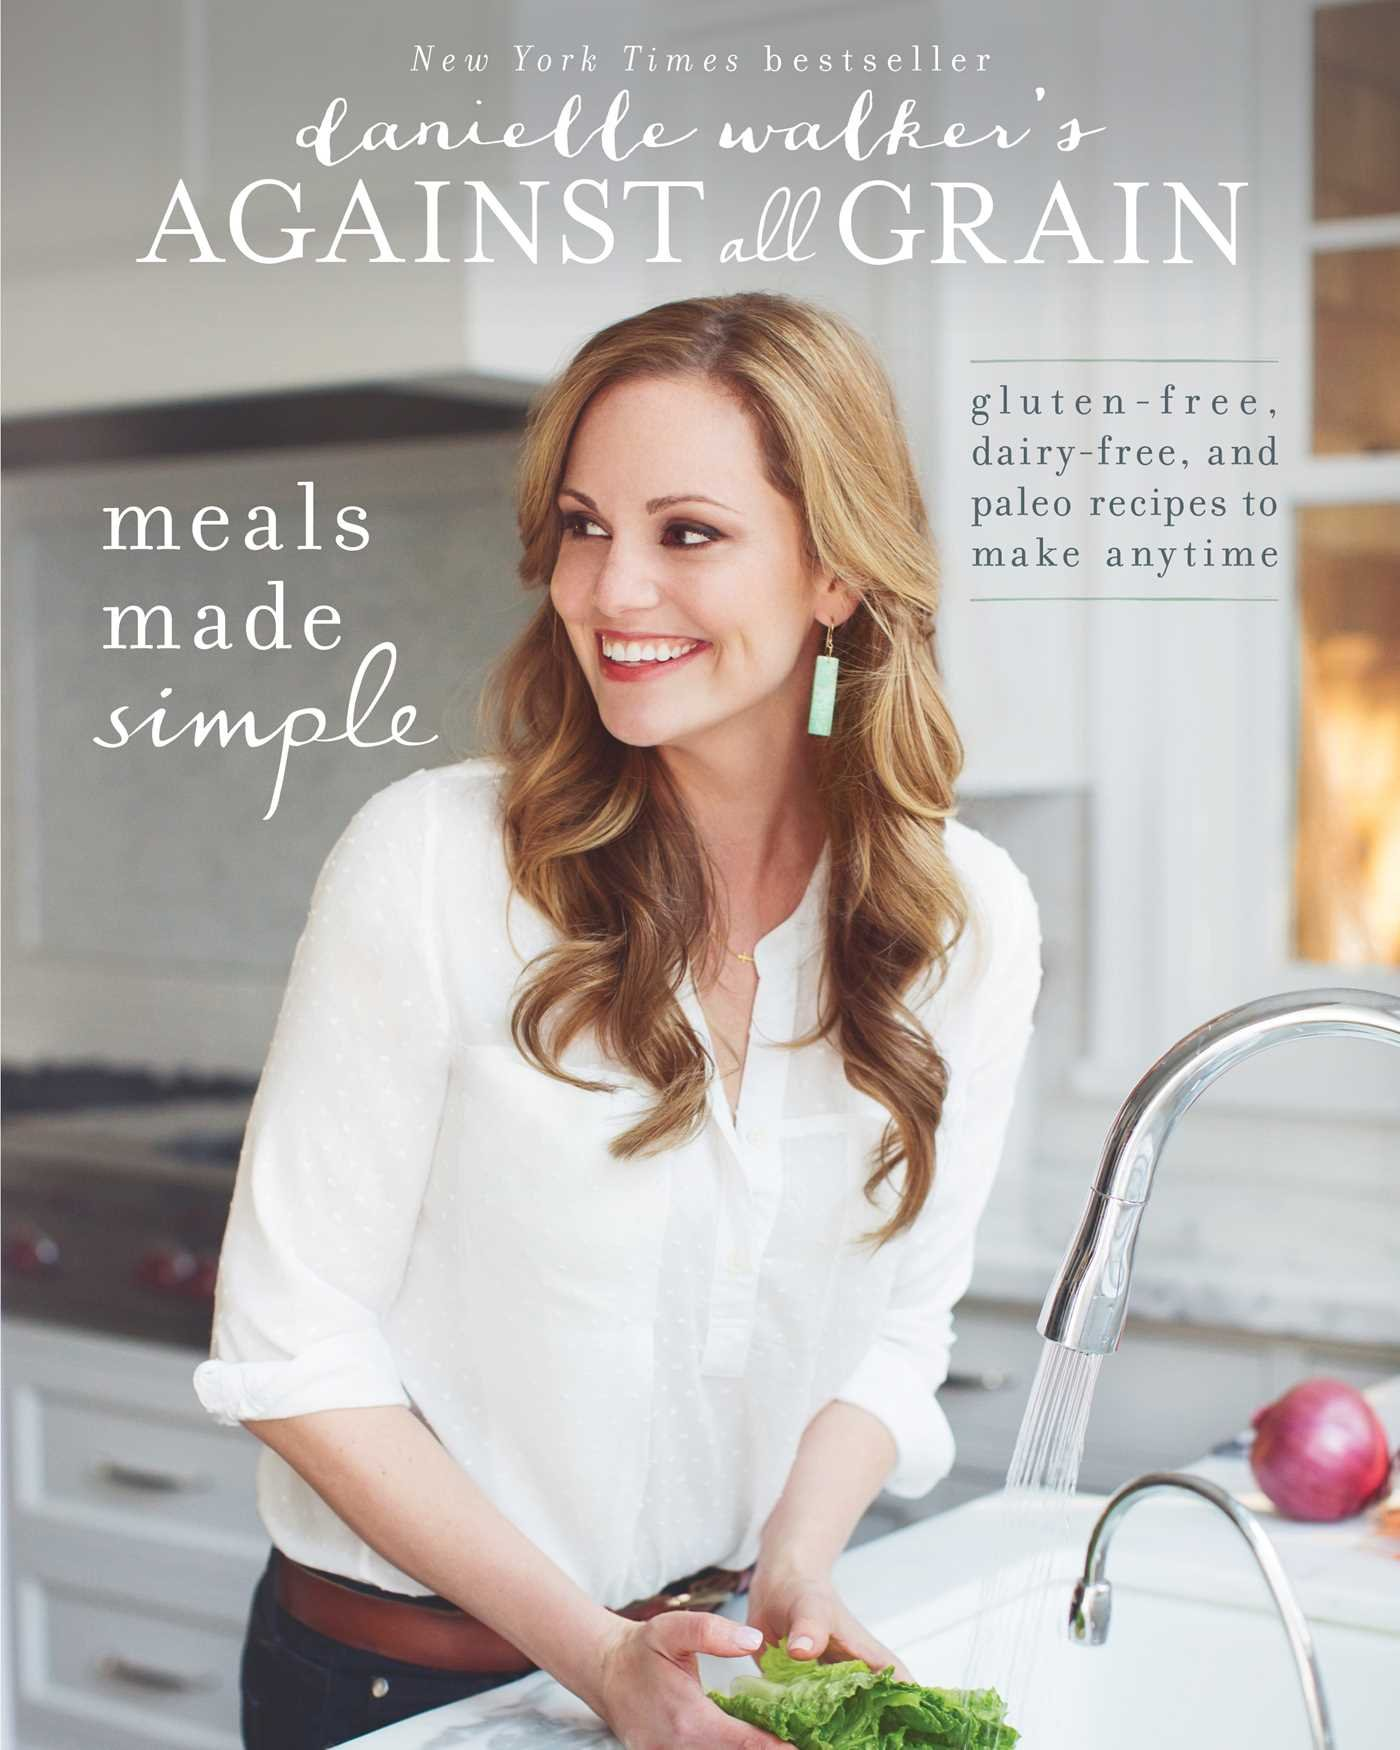 danielle walkers gluten free meal plan cookbook